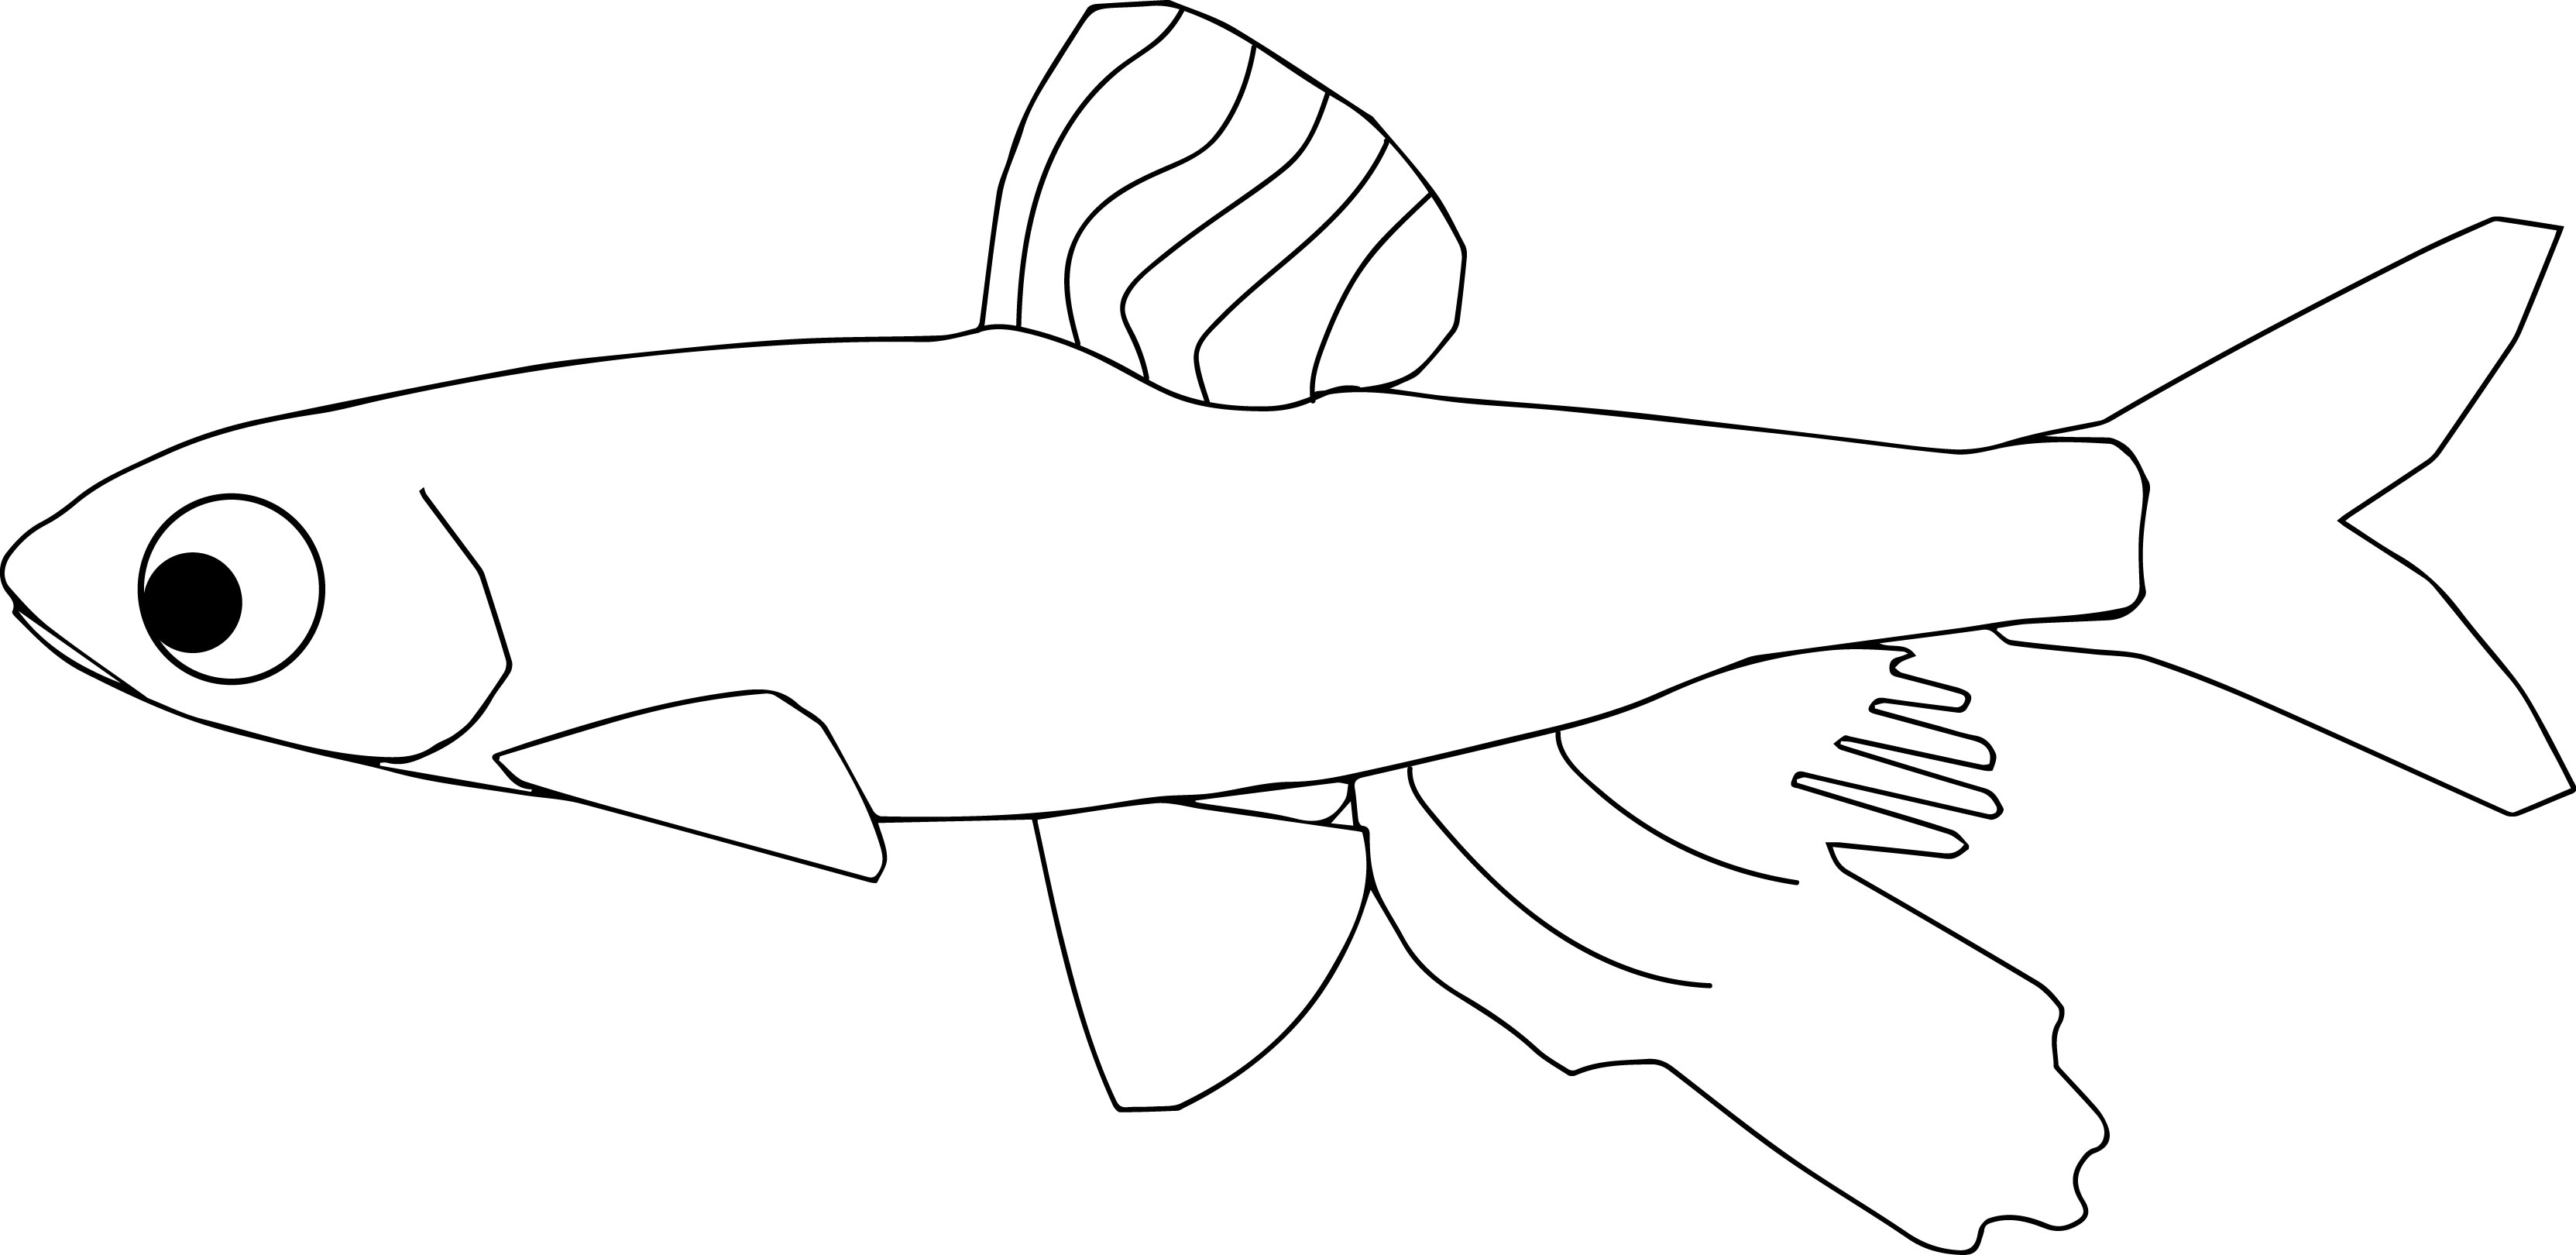 Fish22 1 Coloring Page